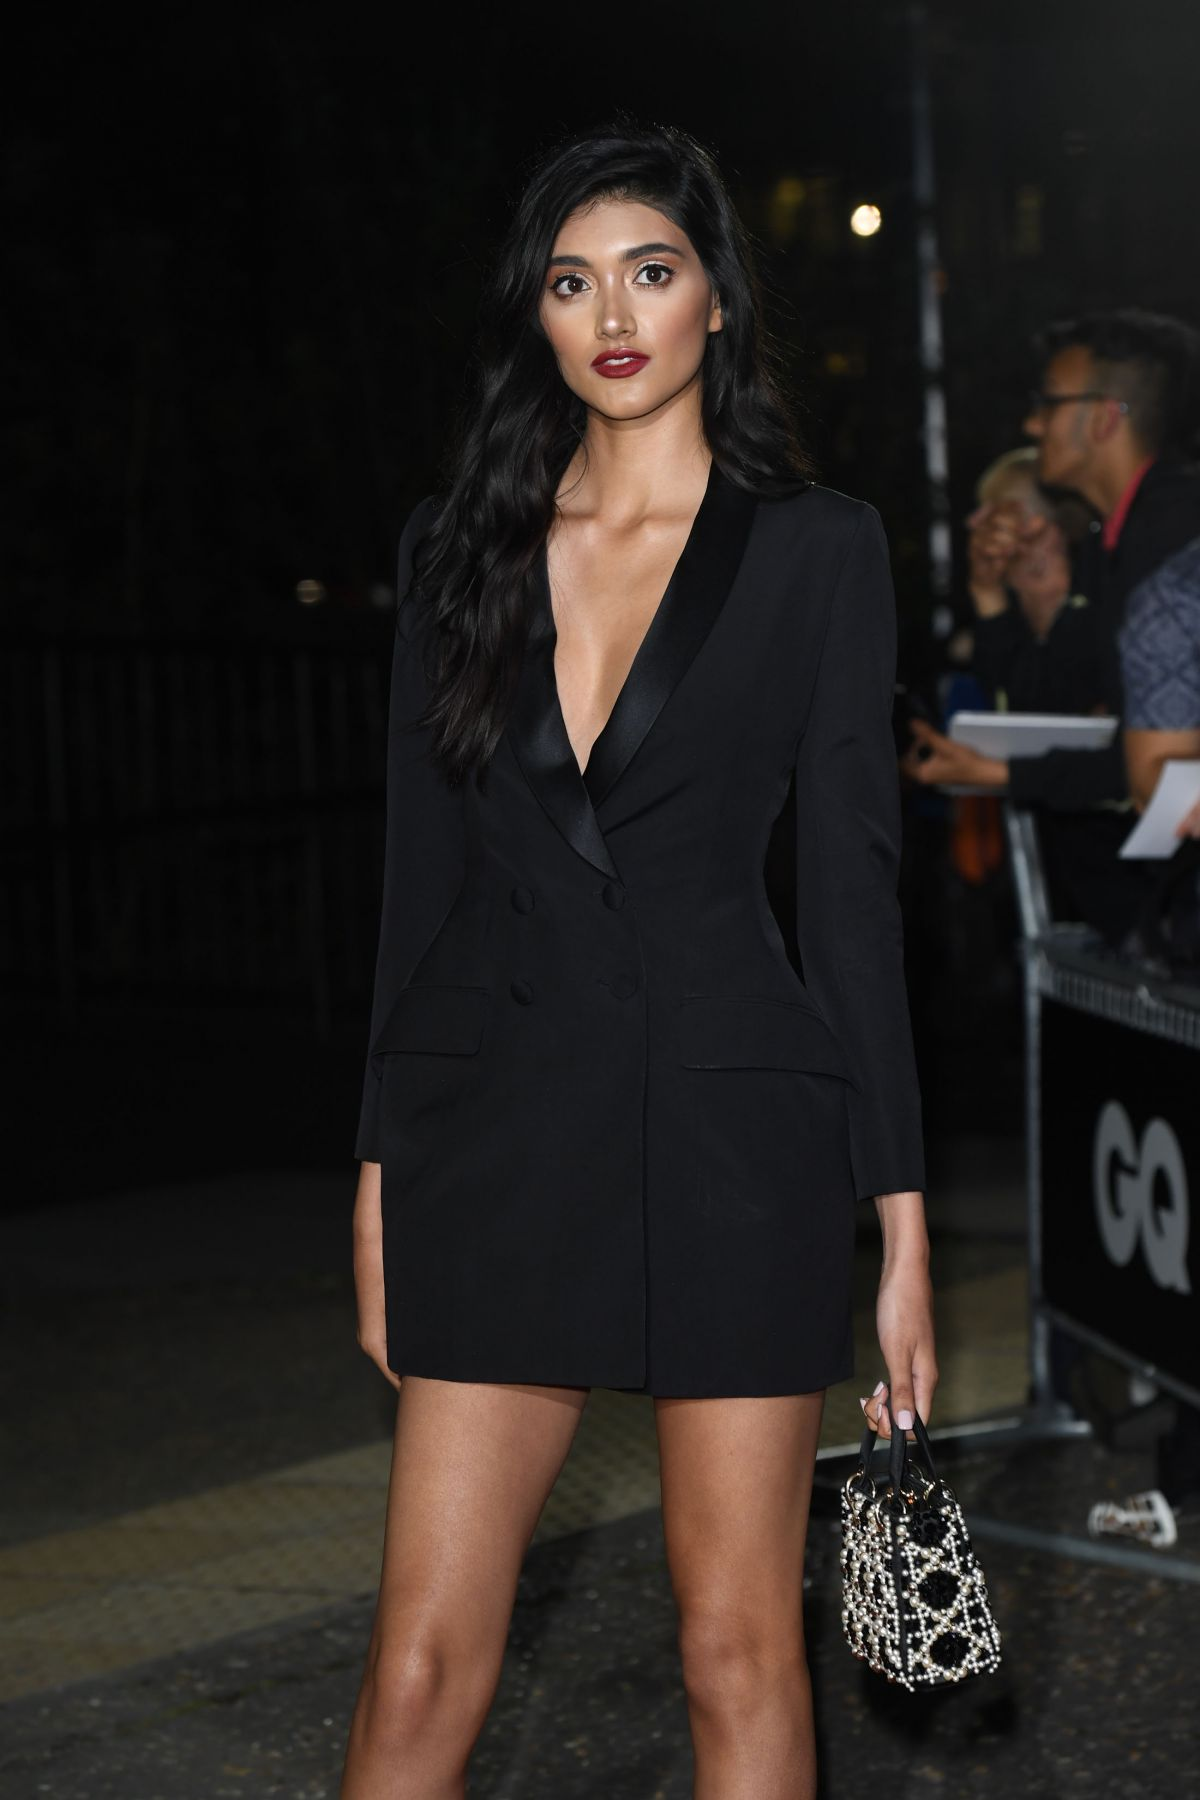 NEELAM GILL at GQ Men of the Year Awards 2016 in London 09/06/2016